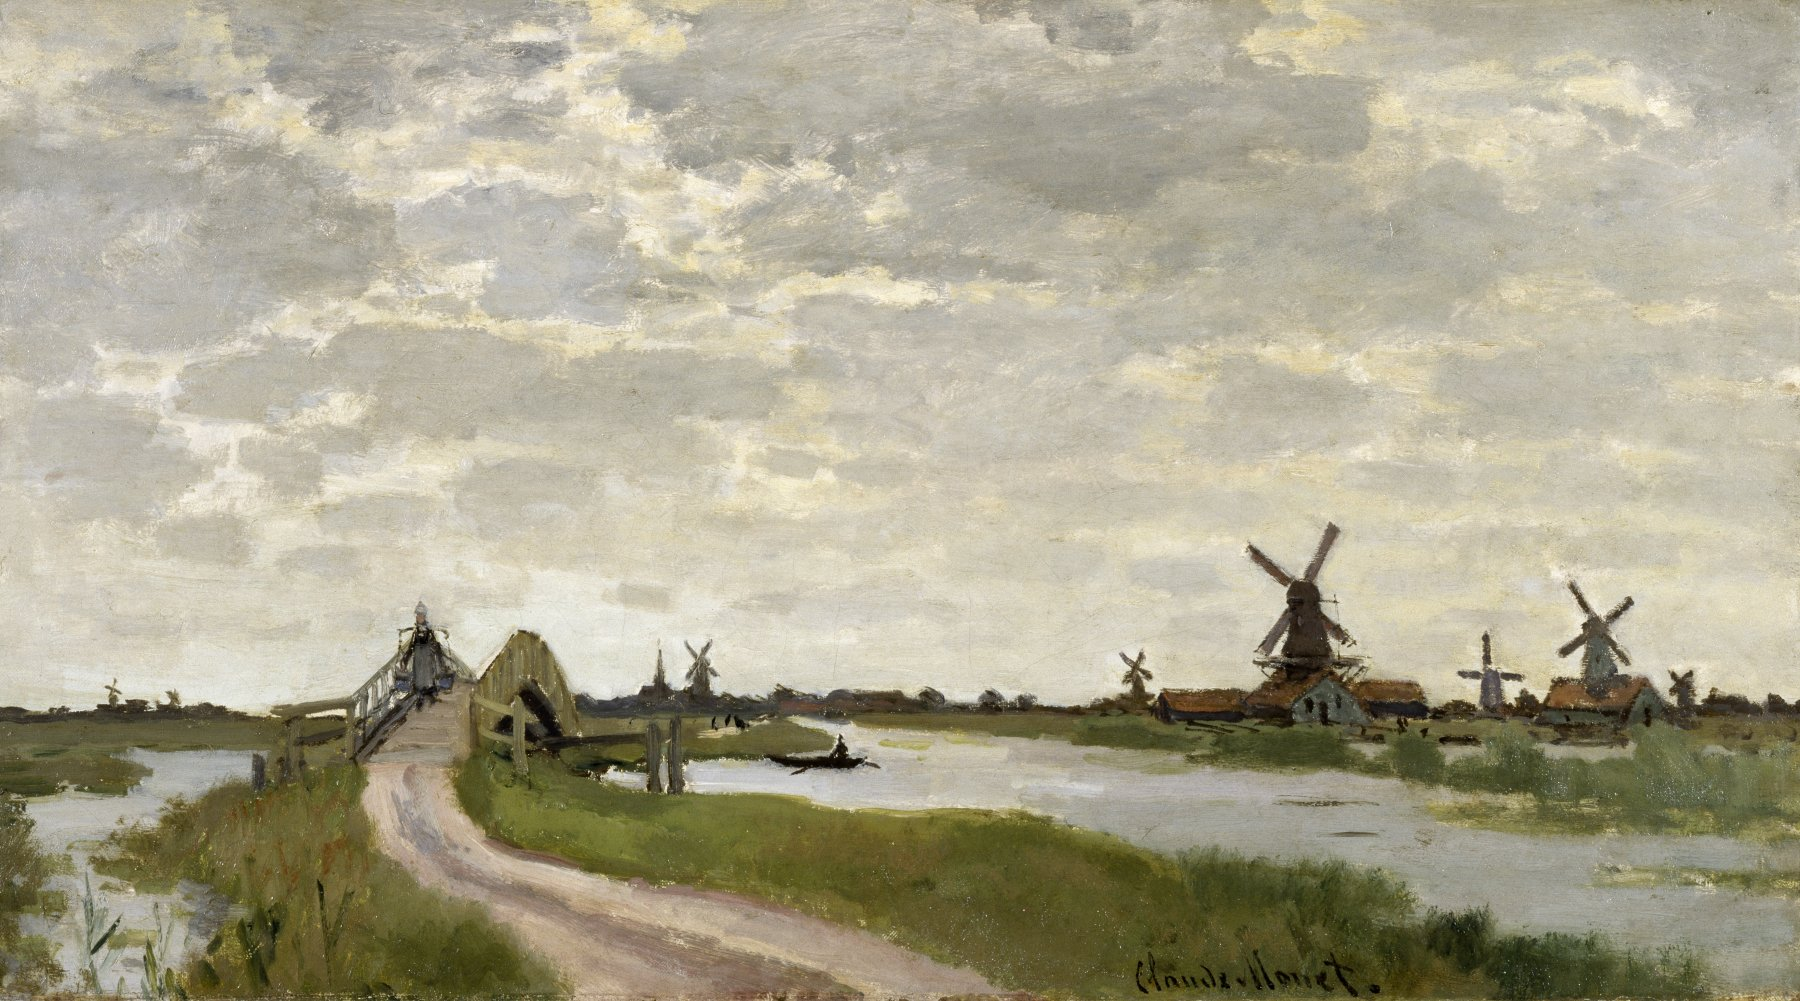 "Wim Heitinga on Twitter: ""#Painting ""Windmills Near Zaandam"", 1871 by Claude  Monet #Monet #Art https://t.co/B507N5FWbr"""